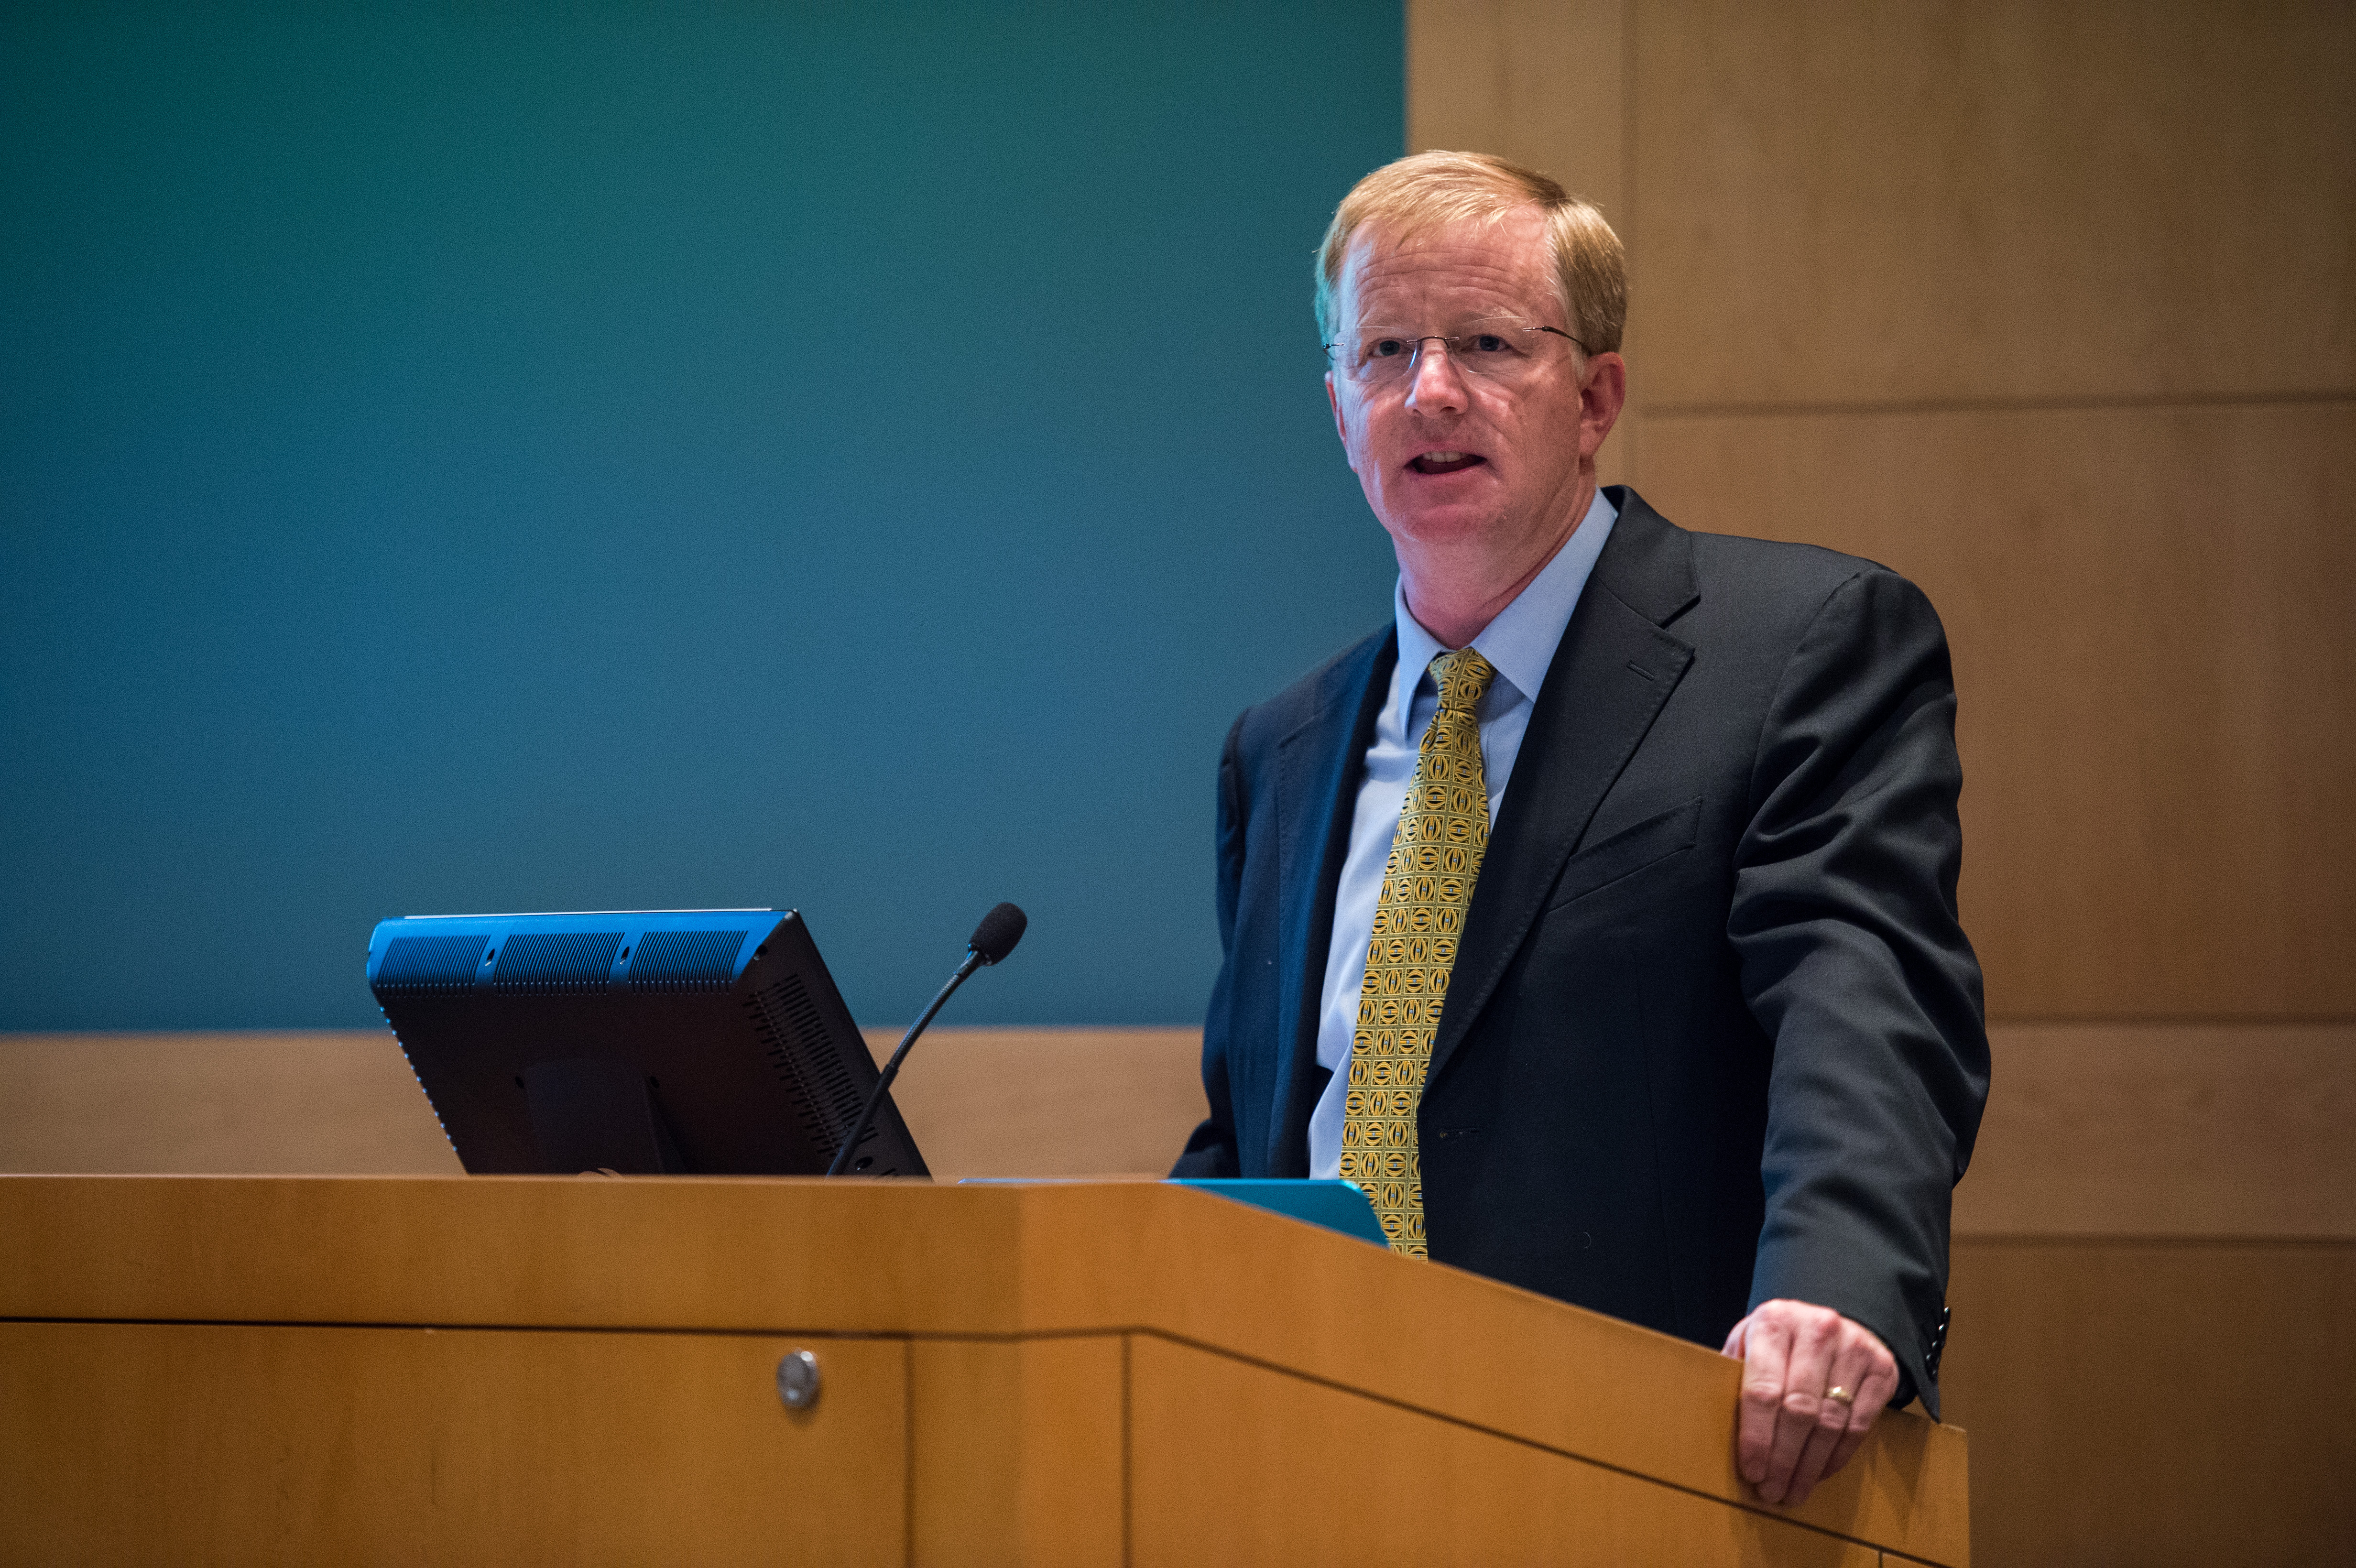 Dr. Brown speaking at a podium during the Dellon Lectureship